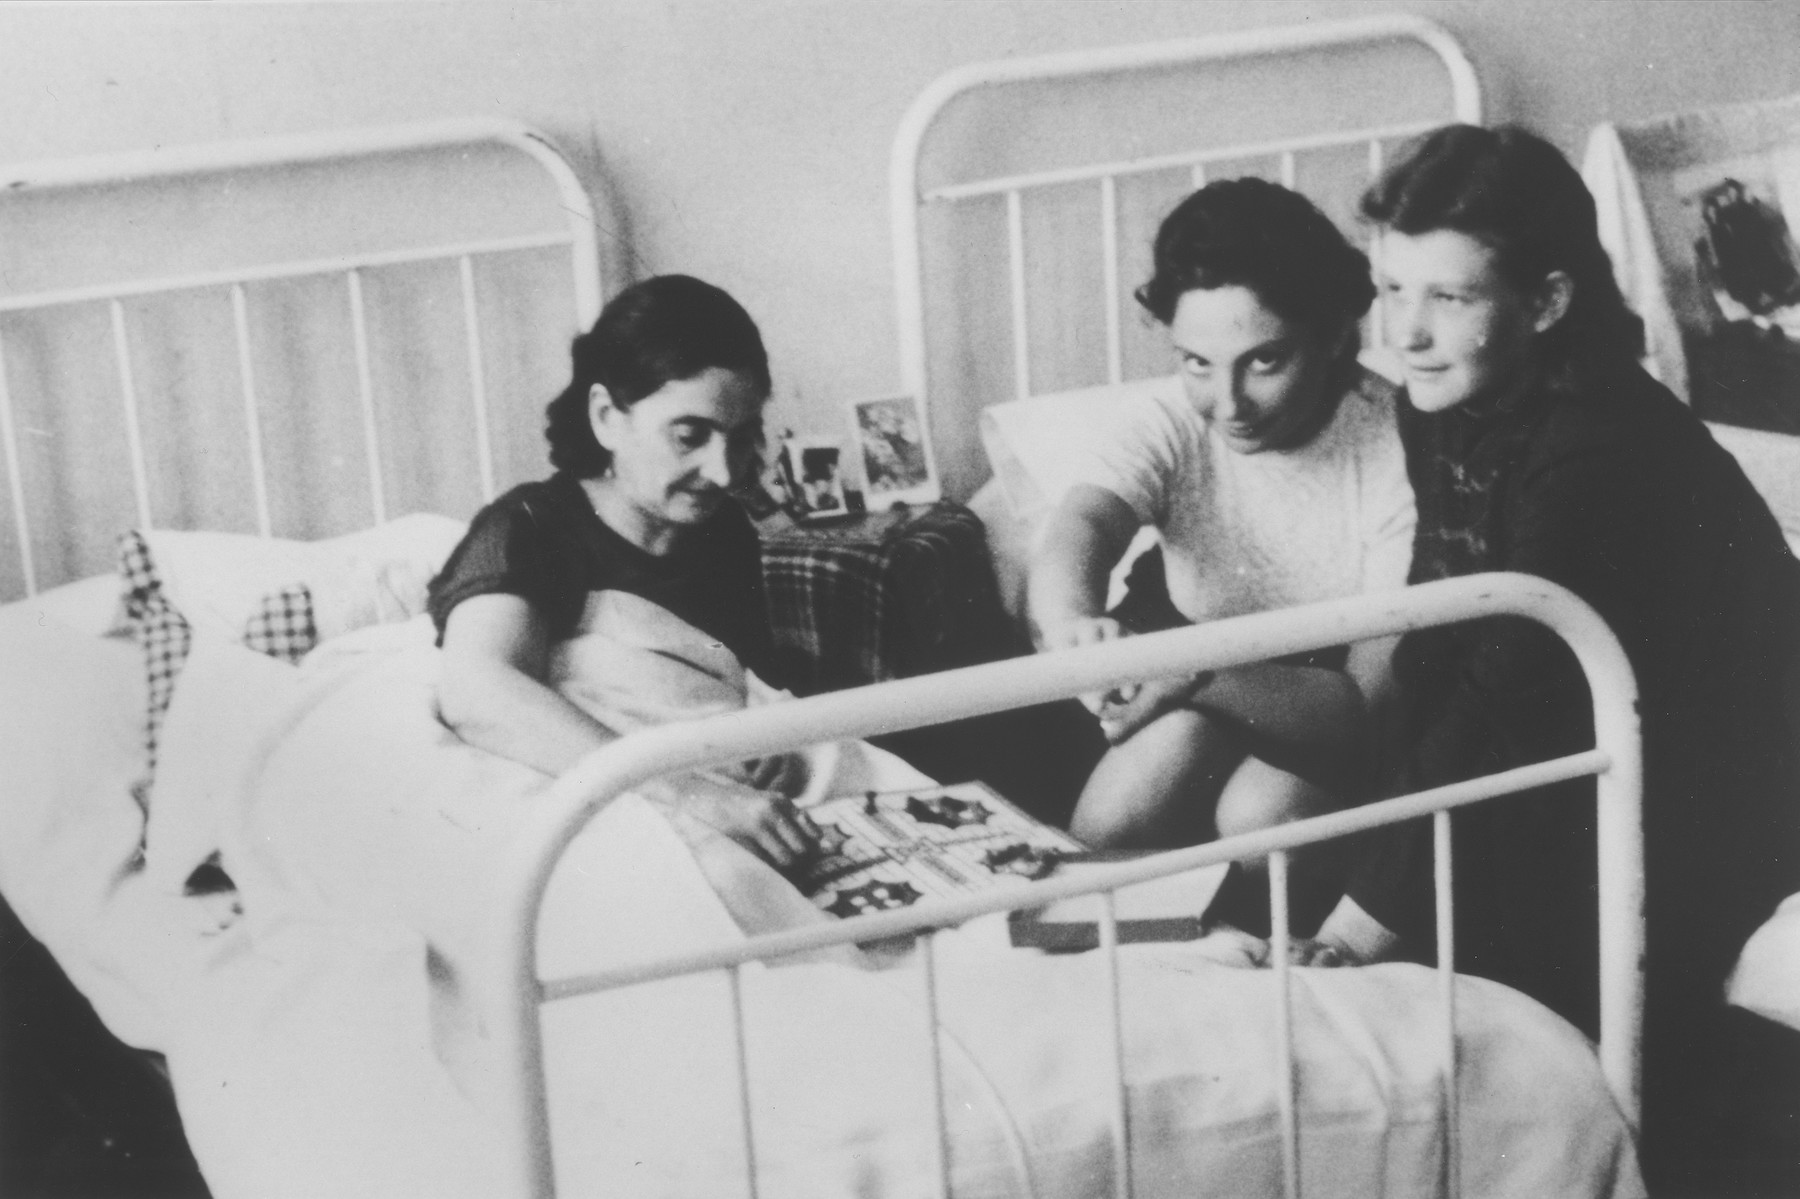 Two Jewish DP women visit a friend in the Munich hospital.  Pictured on the left is Chenntze Gaviseza who was wounded twice in concentration camp.